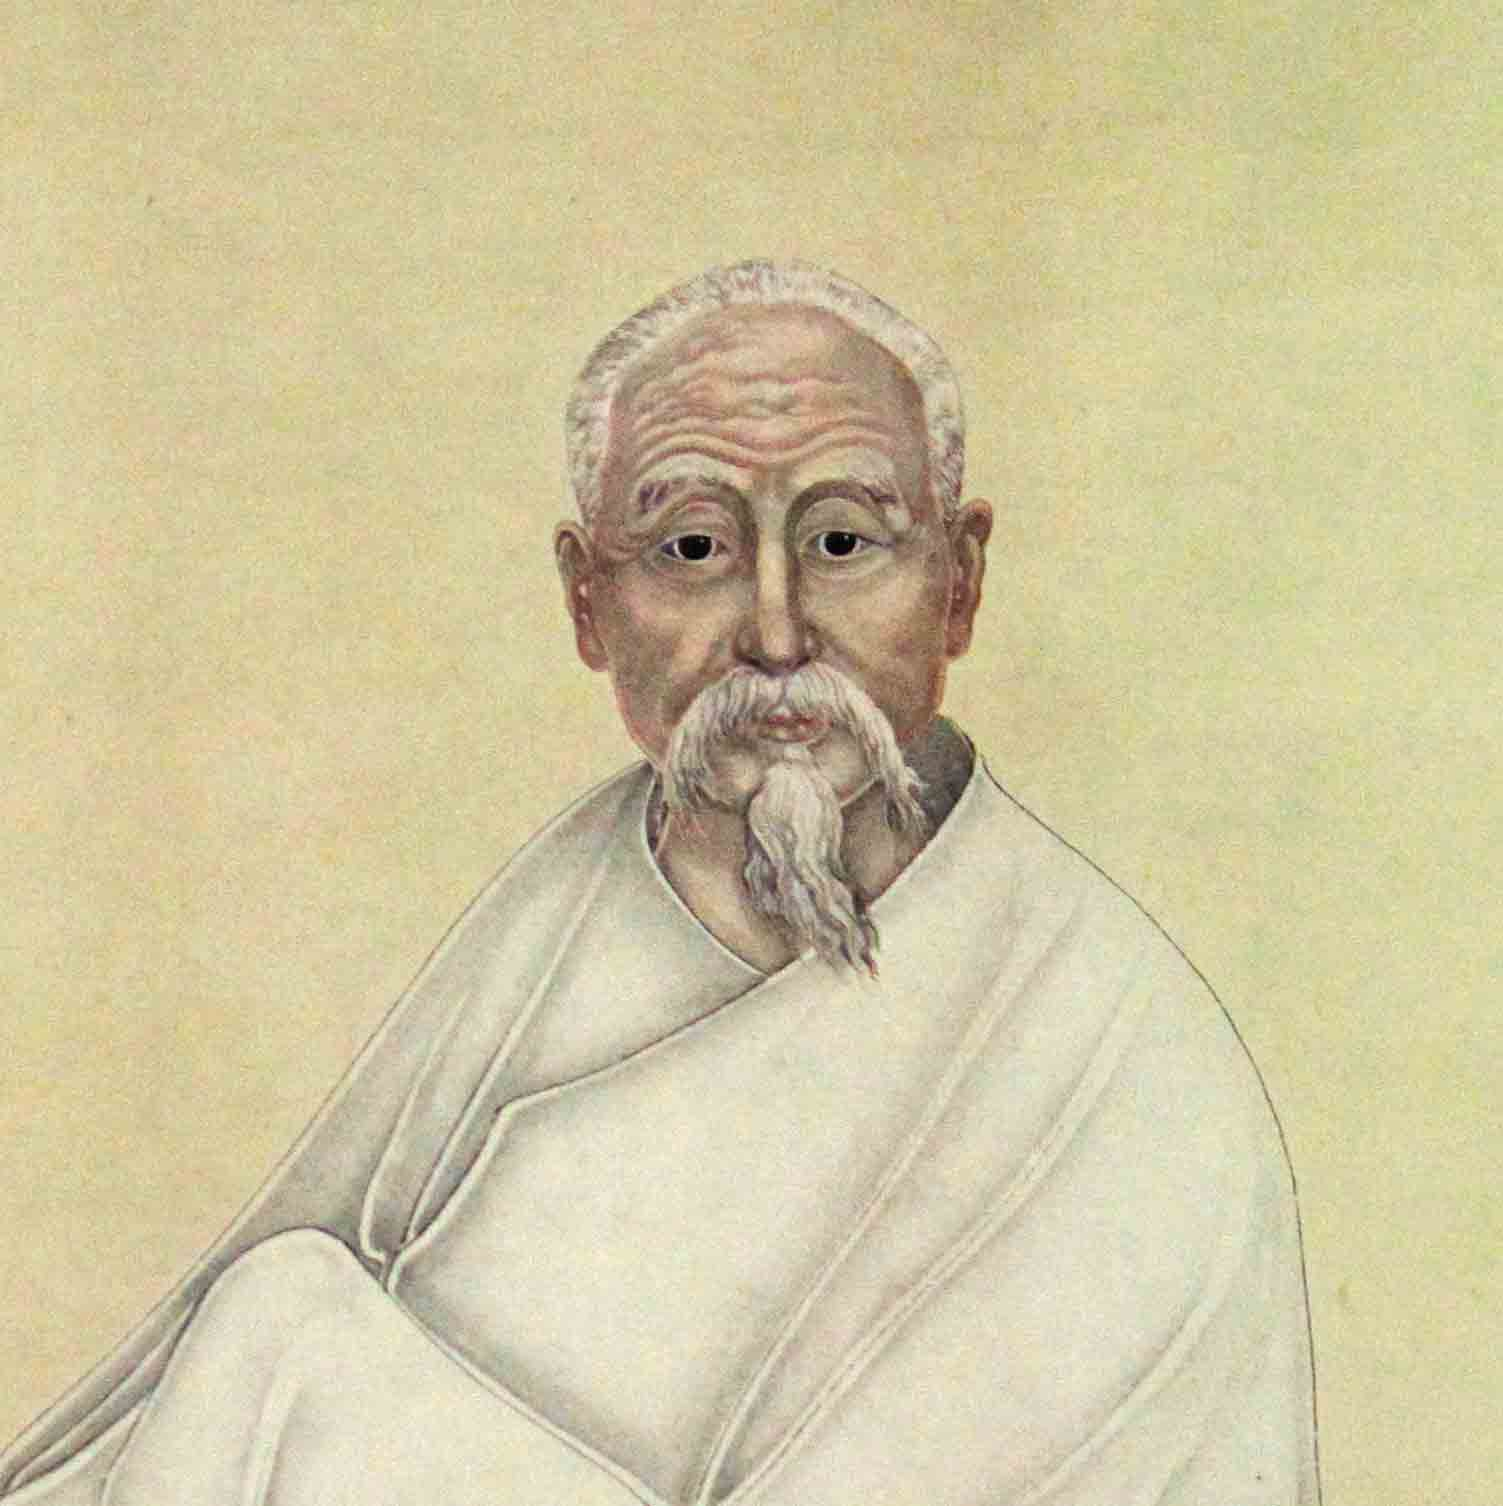 Painted portrait of Wang Fengyi.